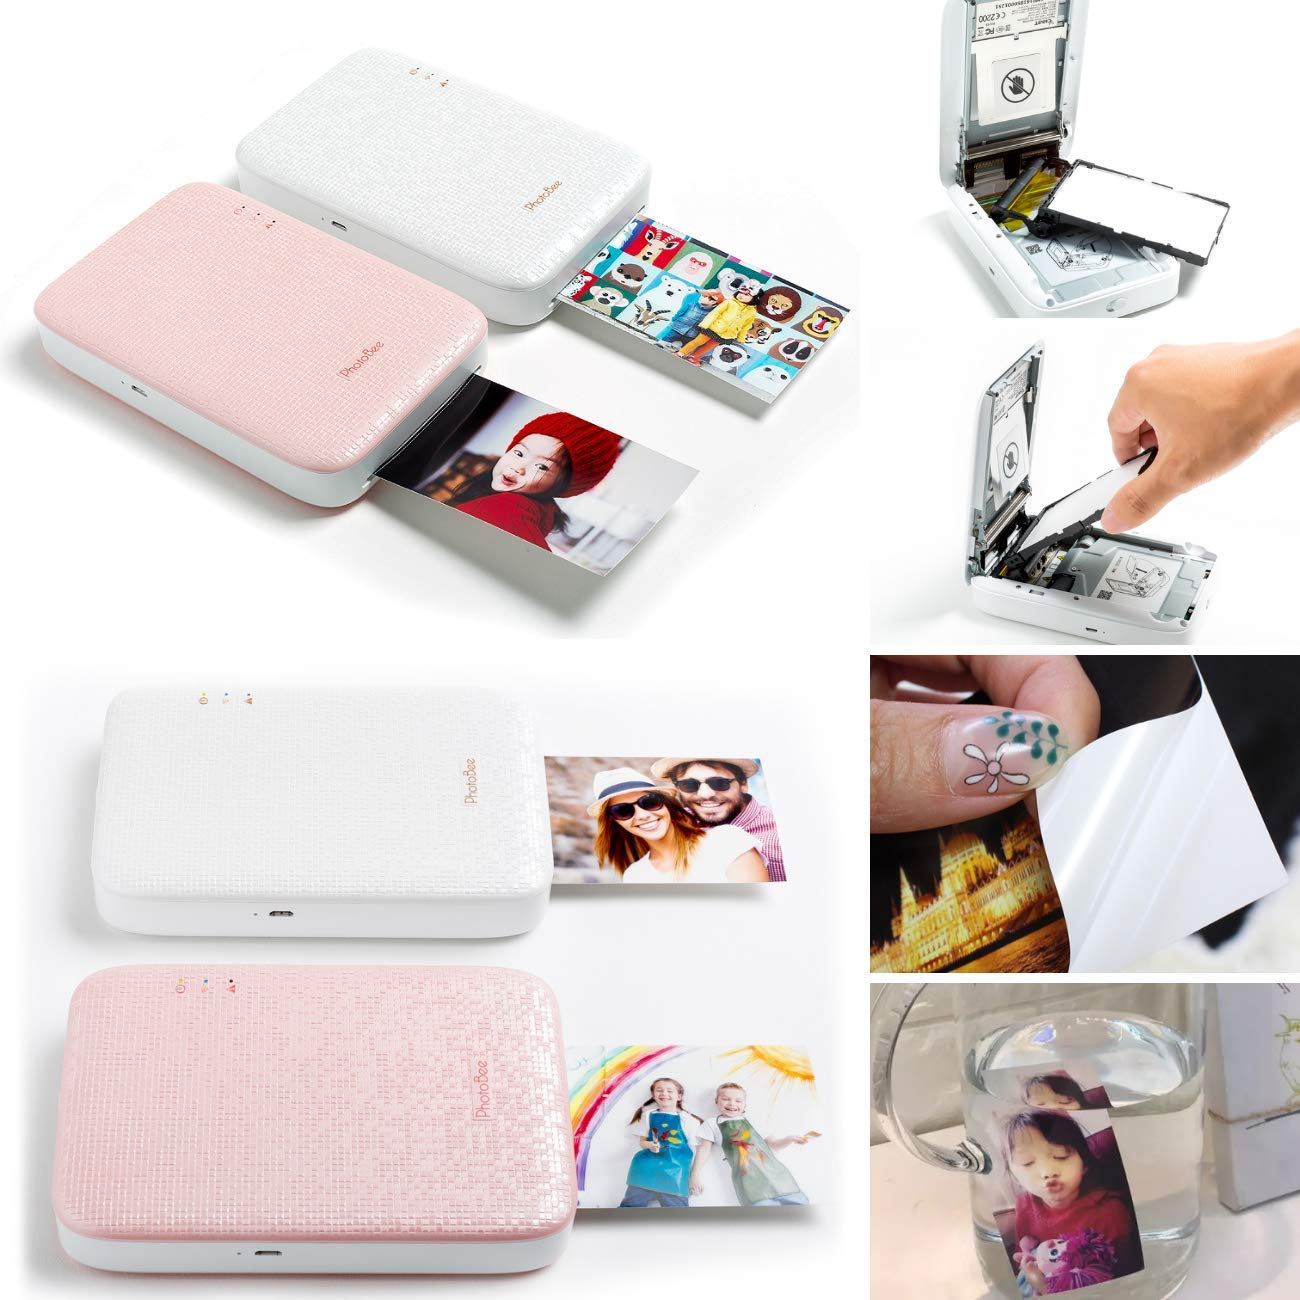 Photobee Portable Sticker Photo Printer - Pink (12 Sheets of Sticky-Backed Photo Paper are Included) by PHOTOBEE